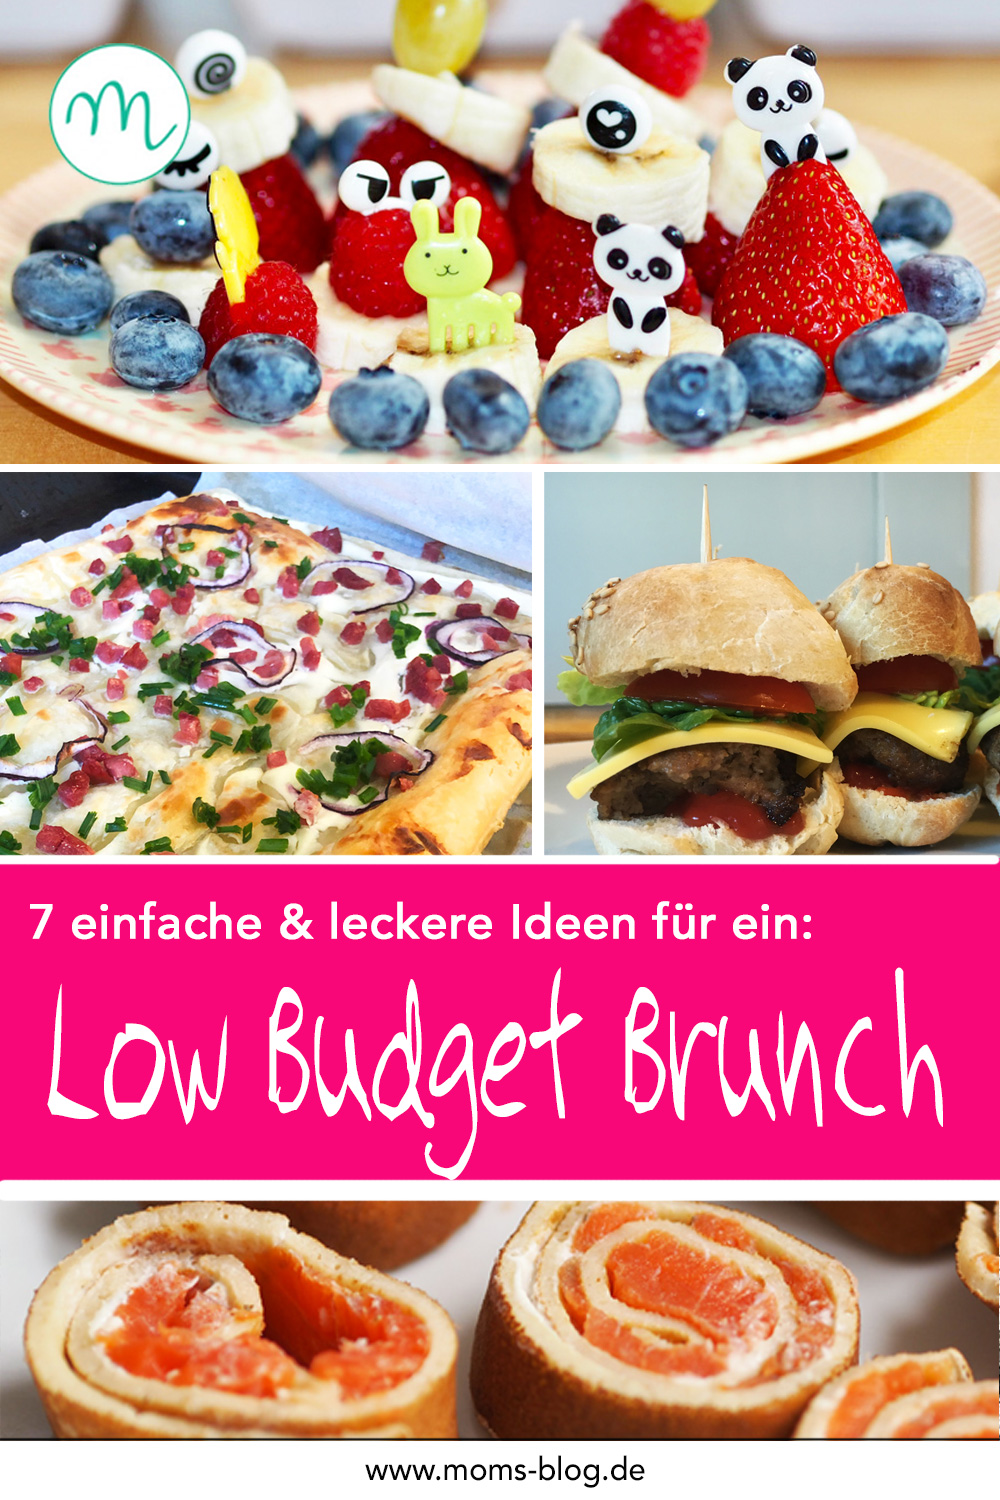 Low Budget 7 Einfache Leckere Brunch Ideen Moms Blog Der